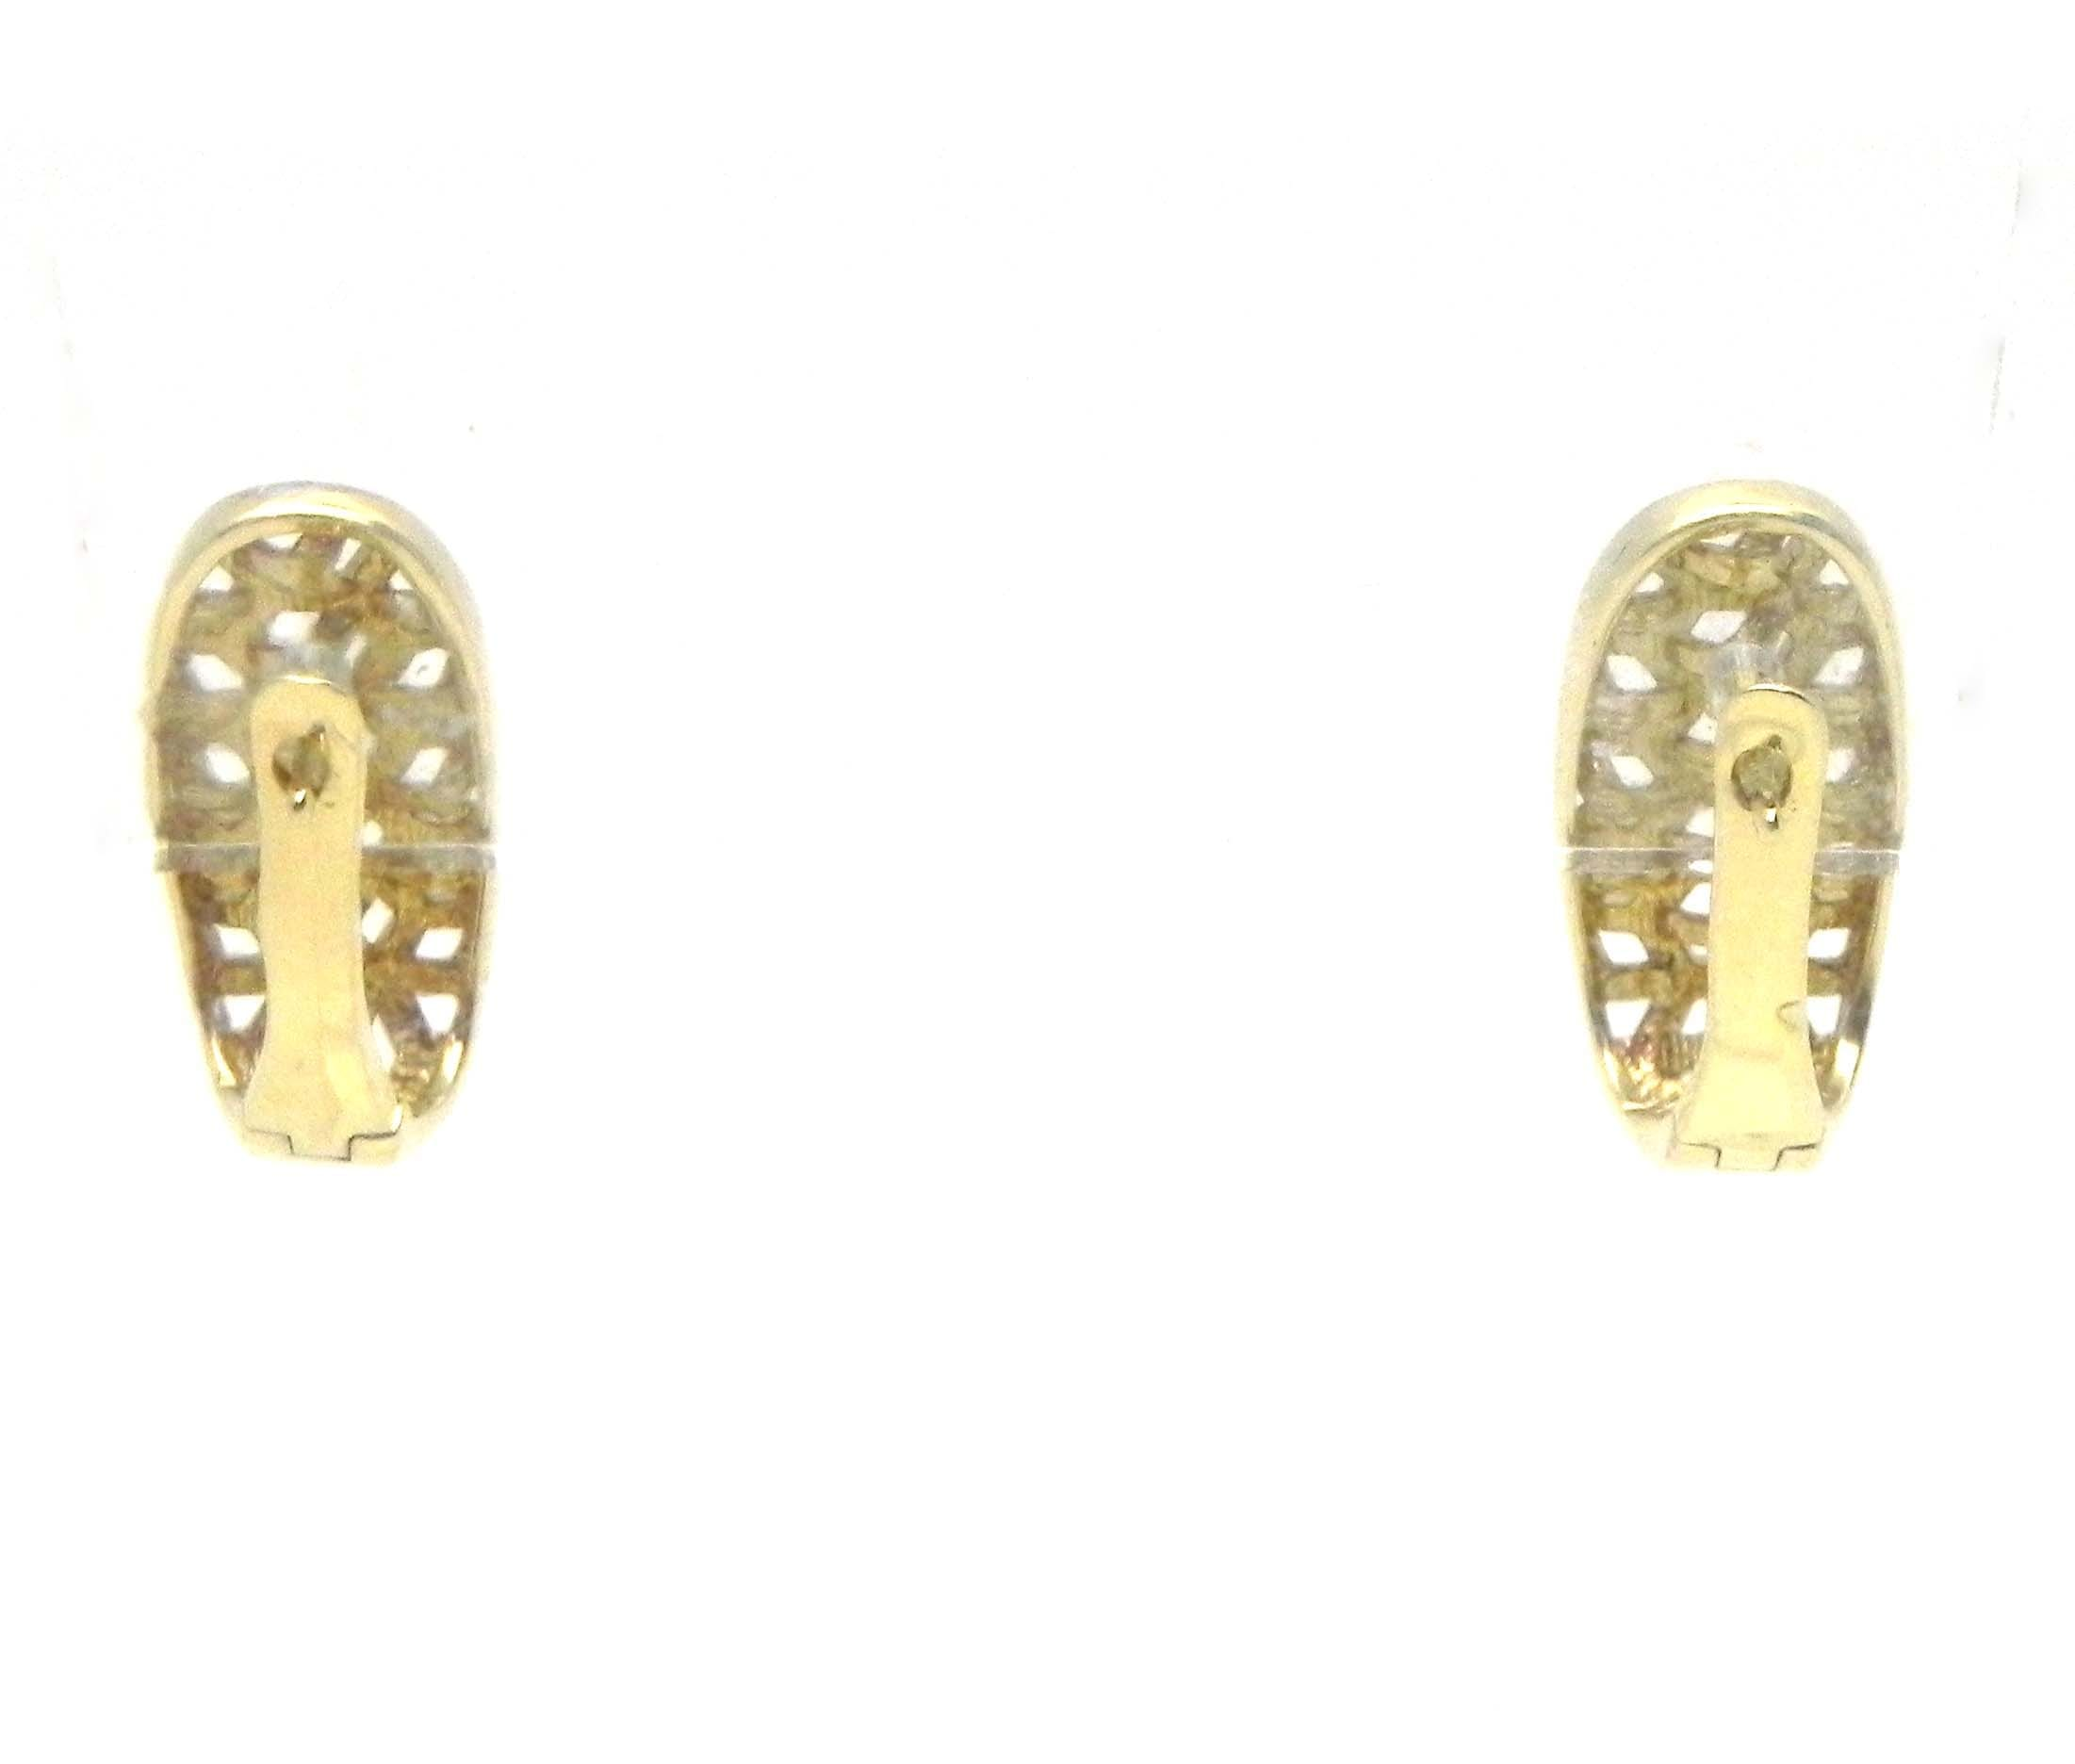 gold and fp veneta bottega yellow stones us smoky back earrings with accents silver snap tourmaline in quartz